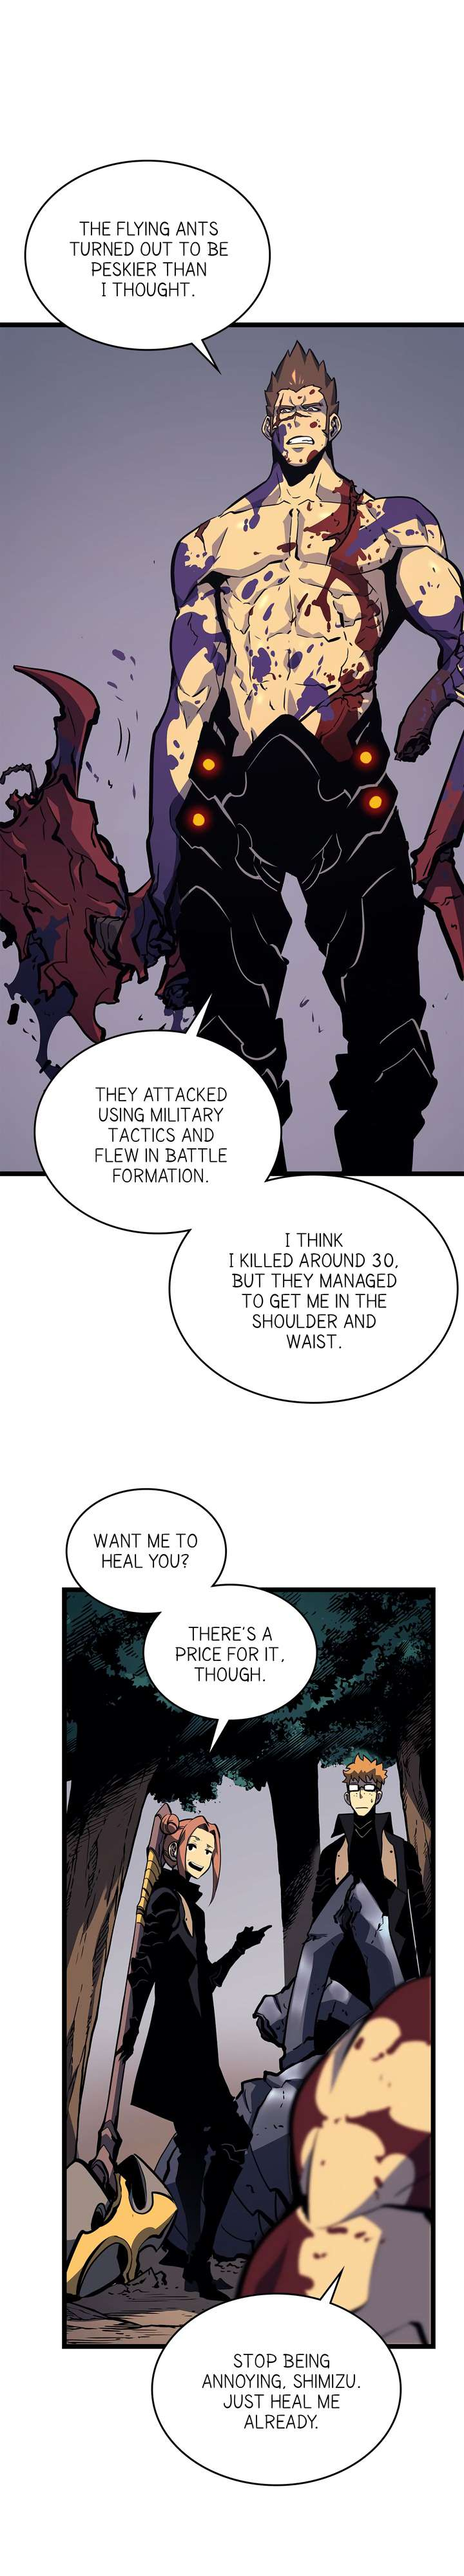 Solo Leveling Chapter 96 Page 23